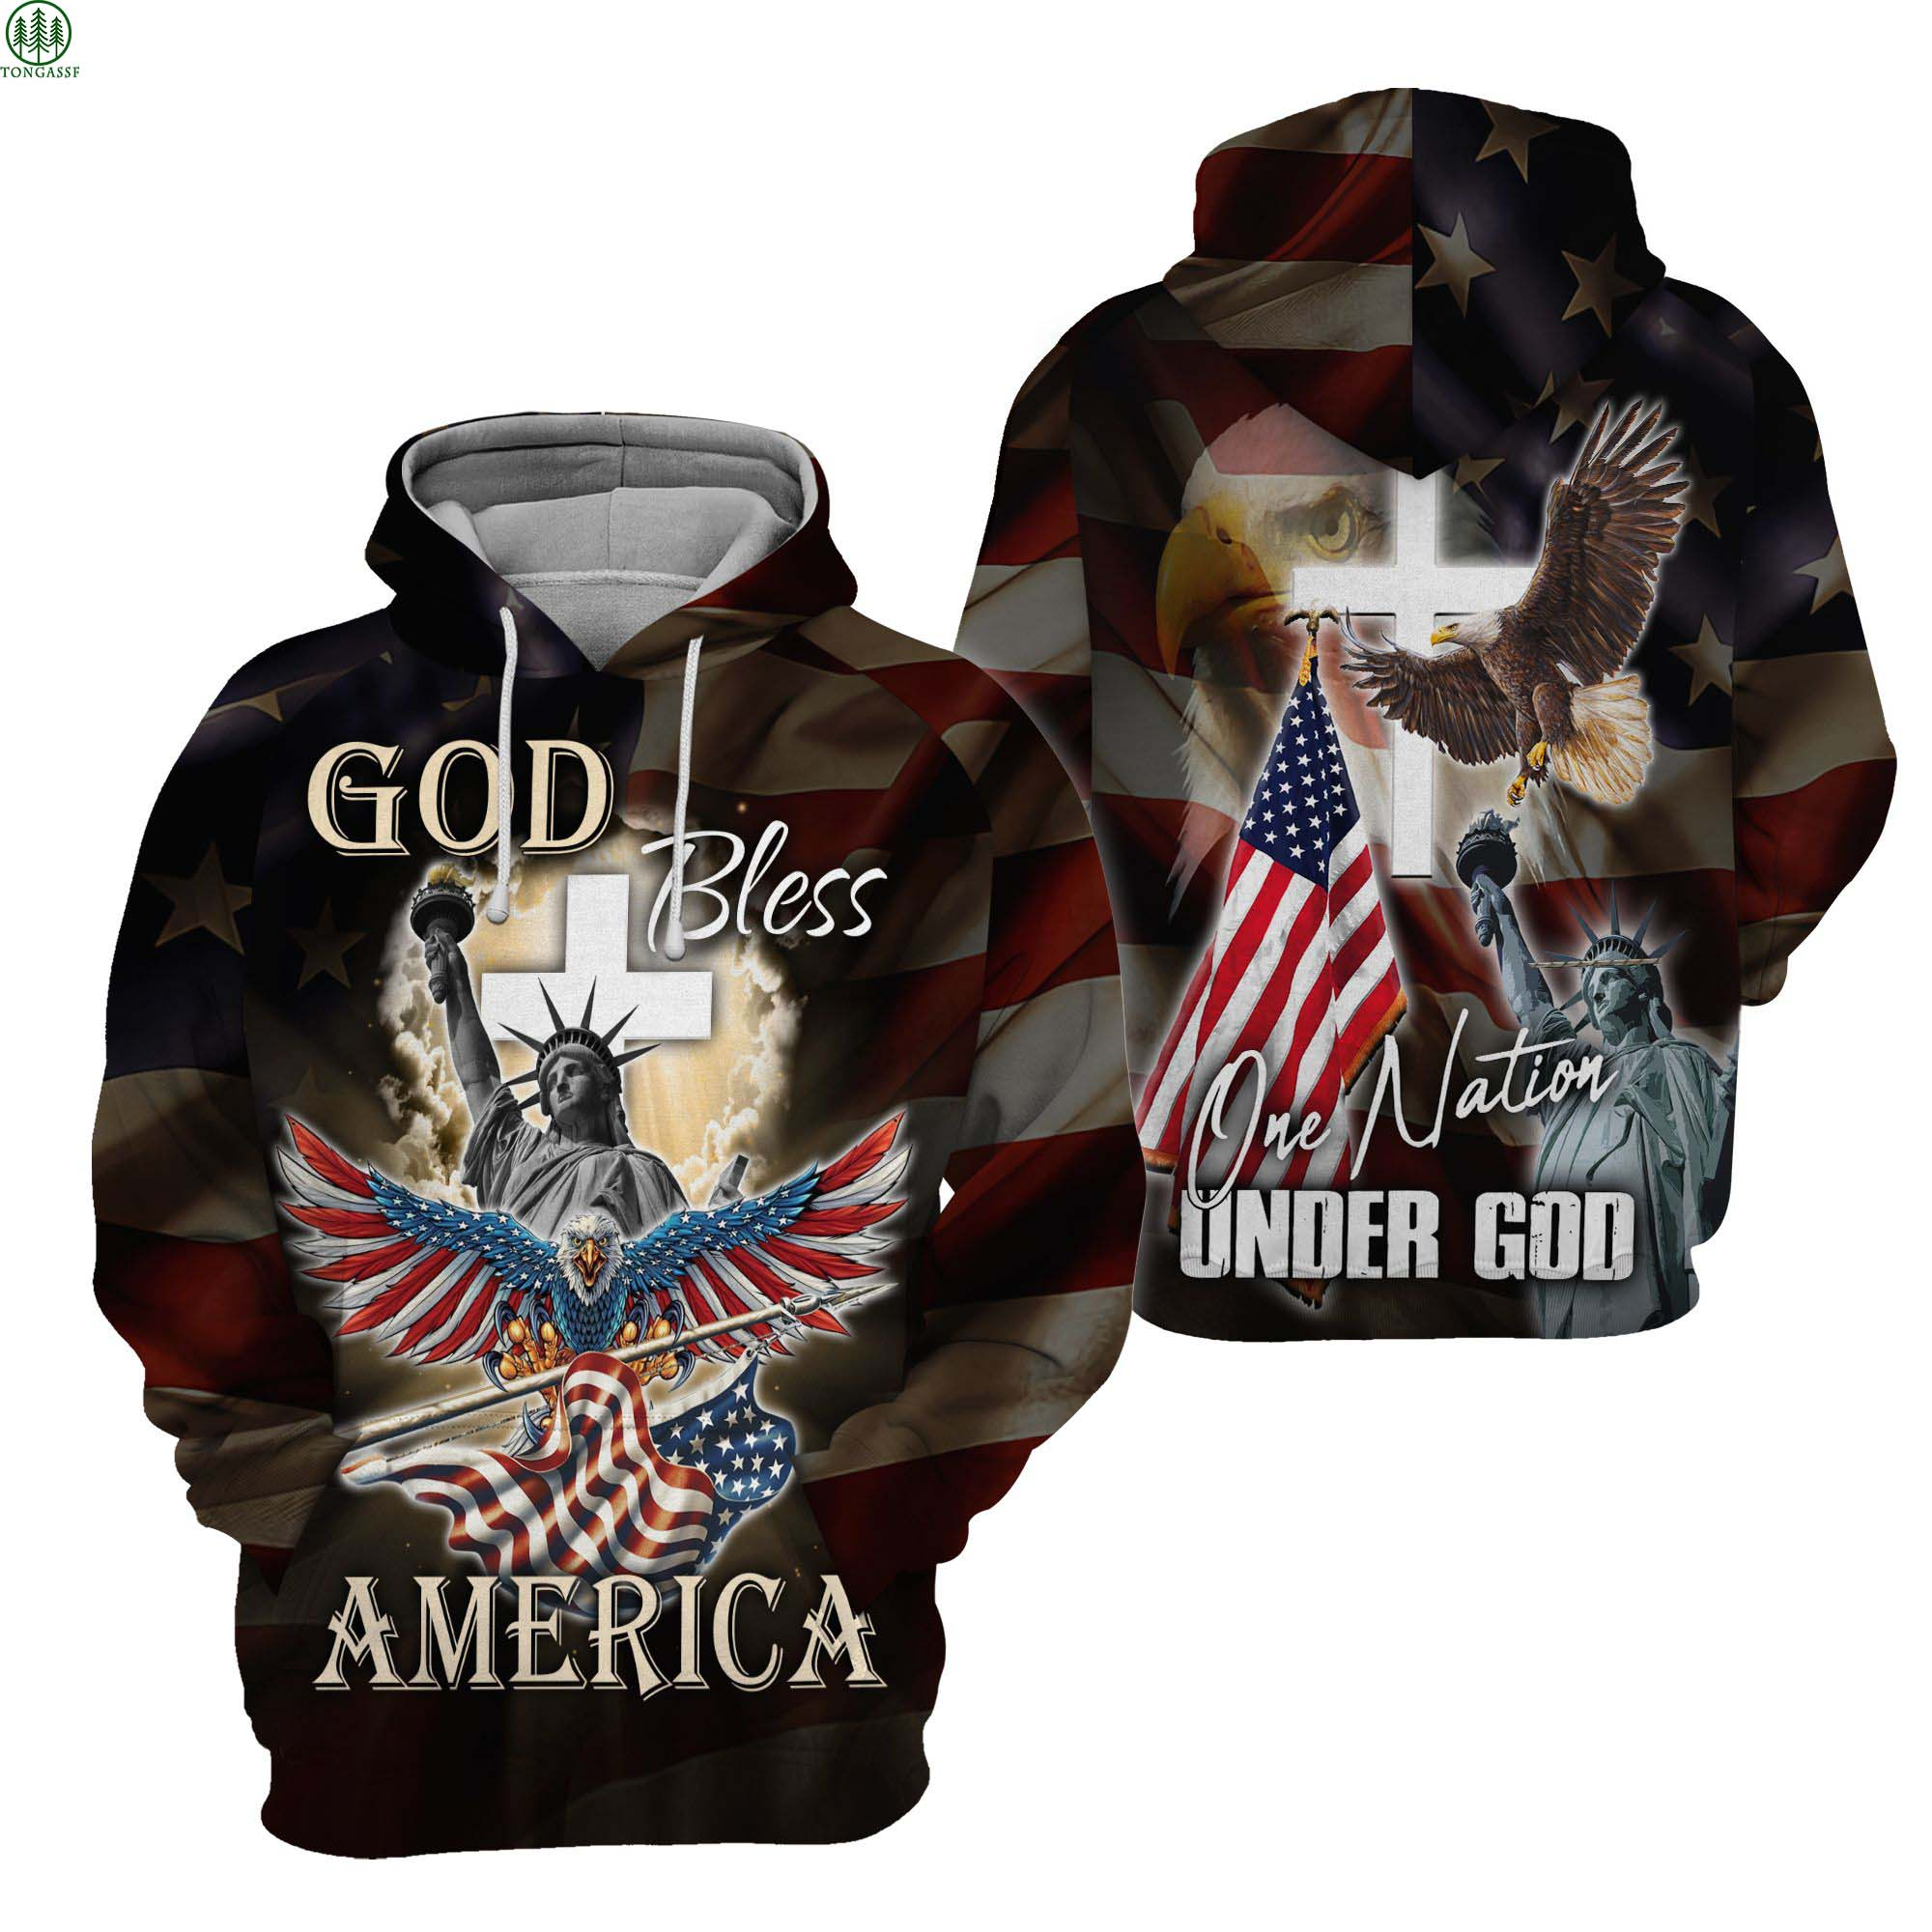 America One nation under God Statue of Liberty Hoodie